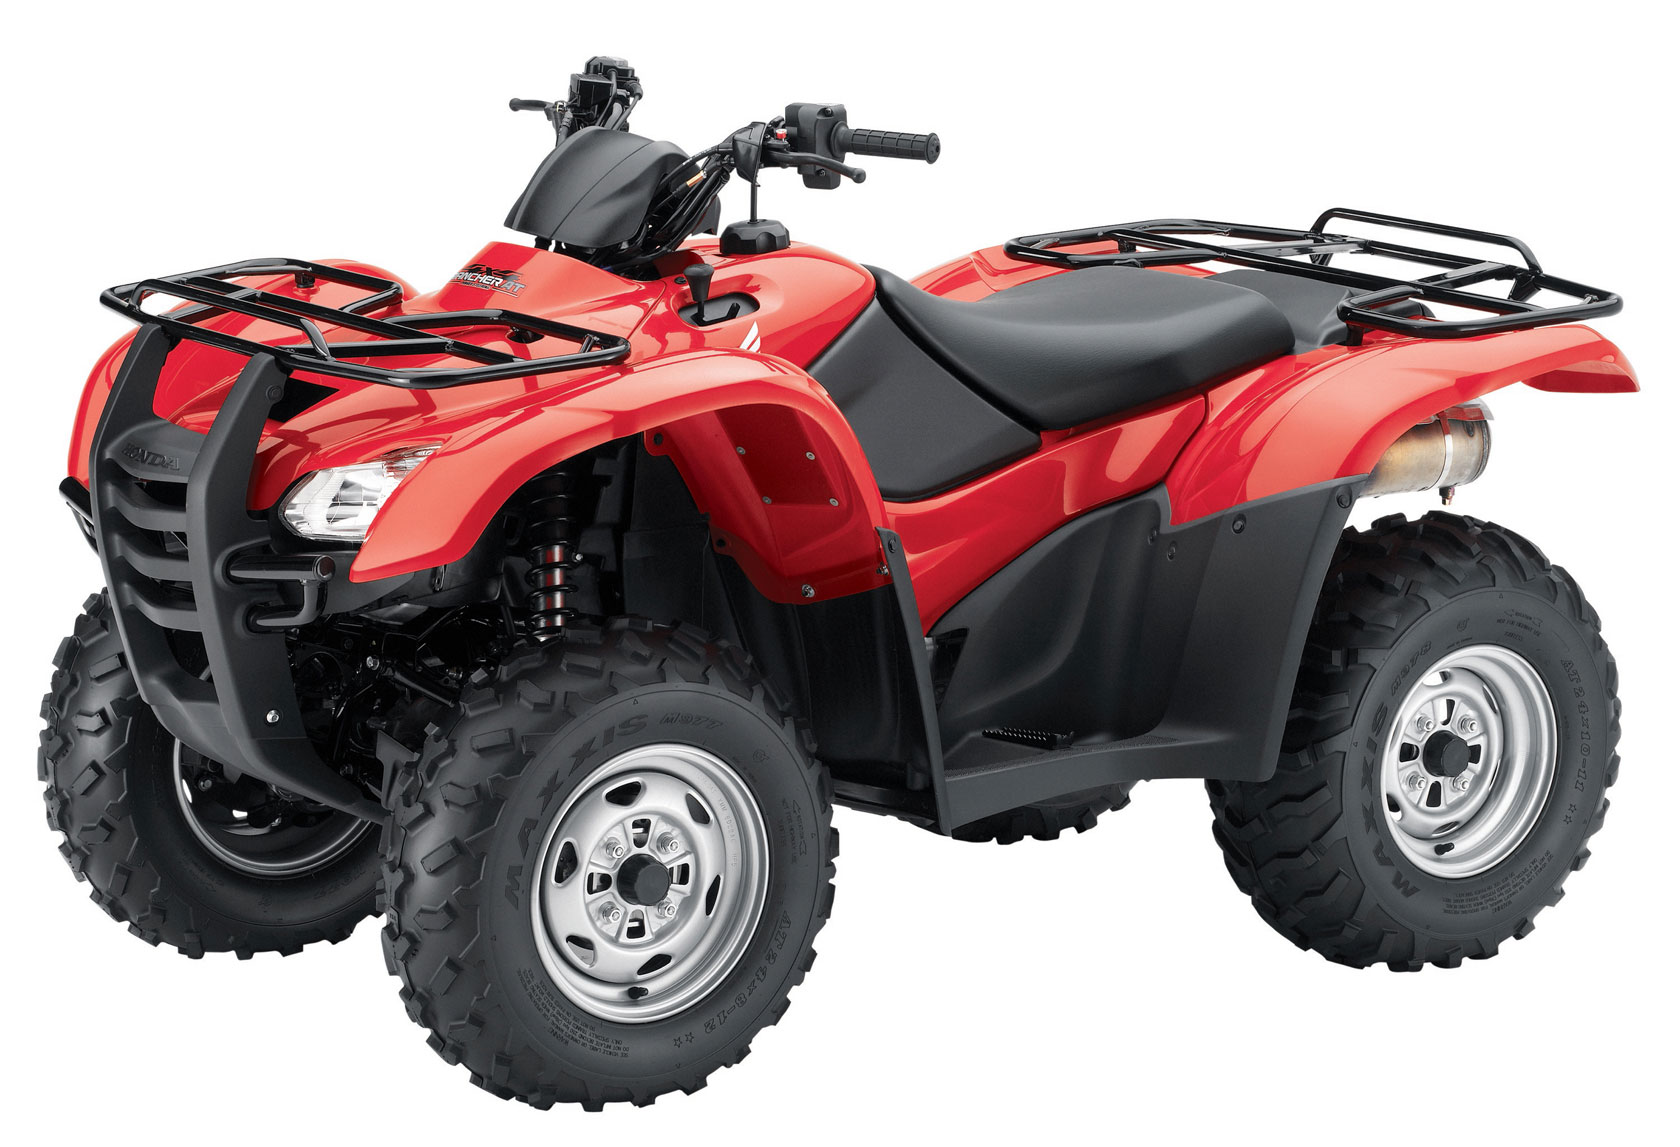 2011 Honda Fourtrax Rancher At Trx420fa